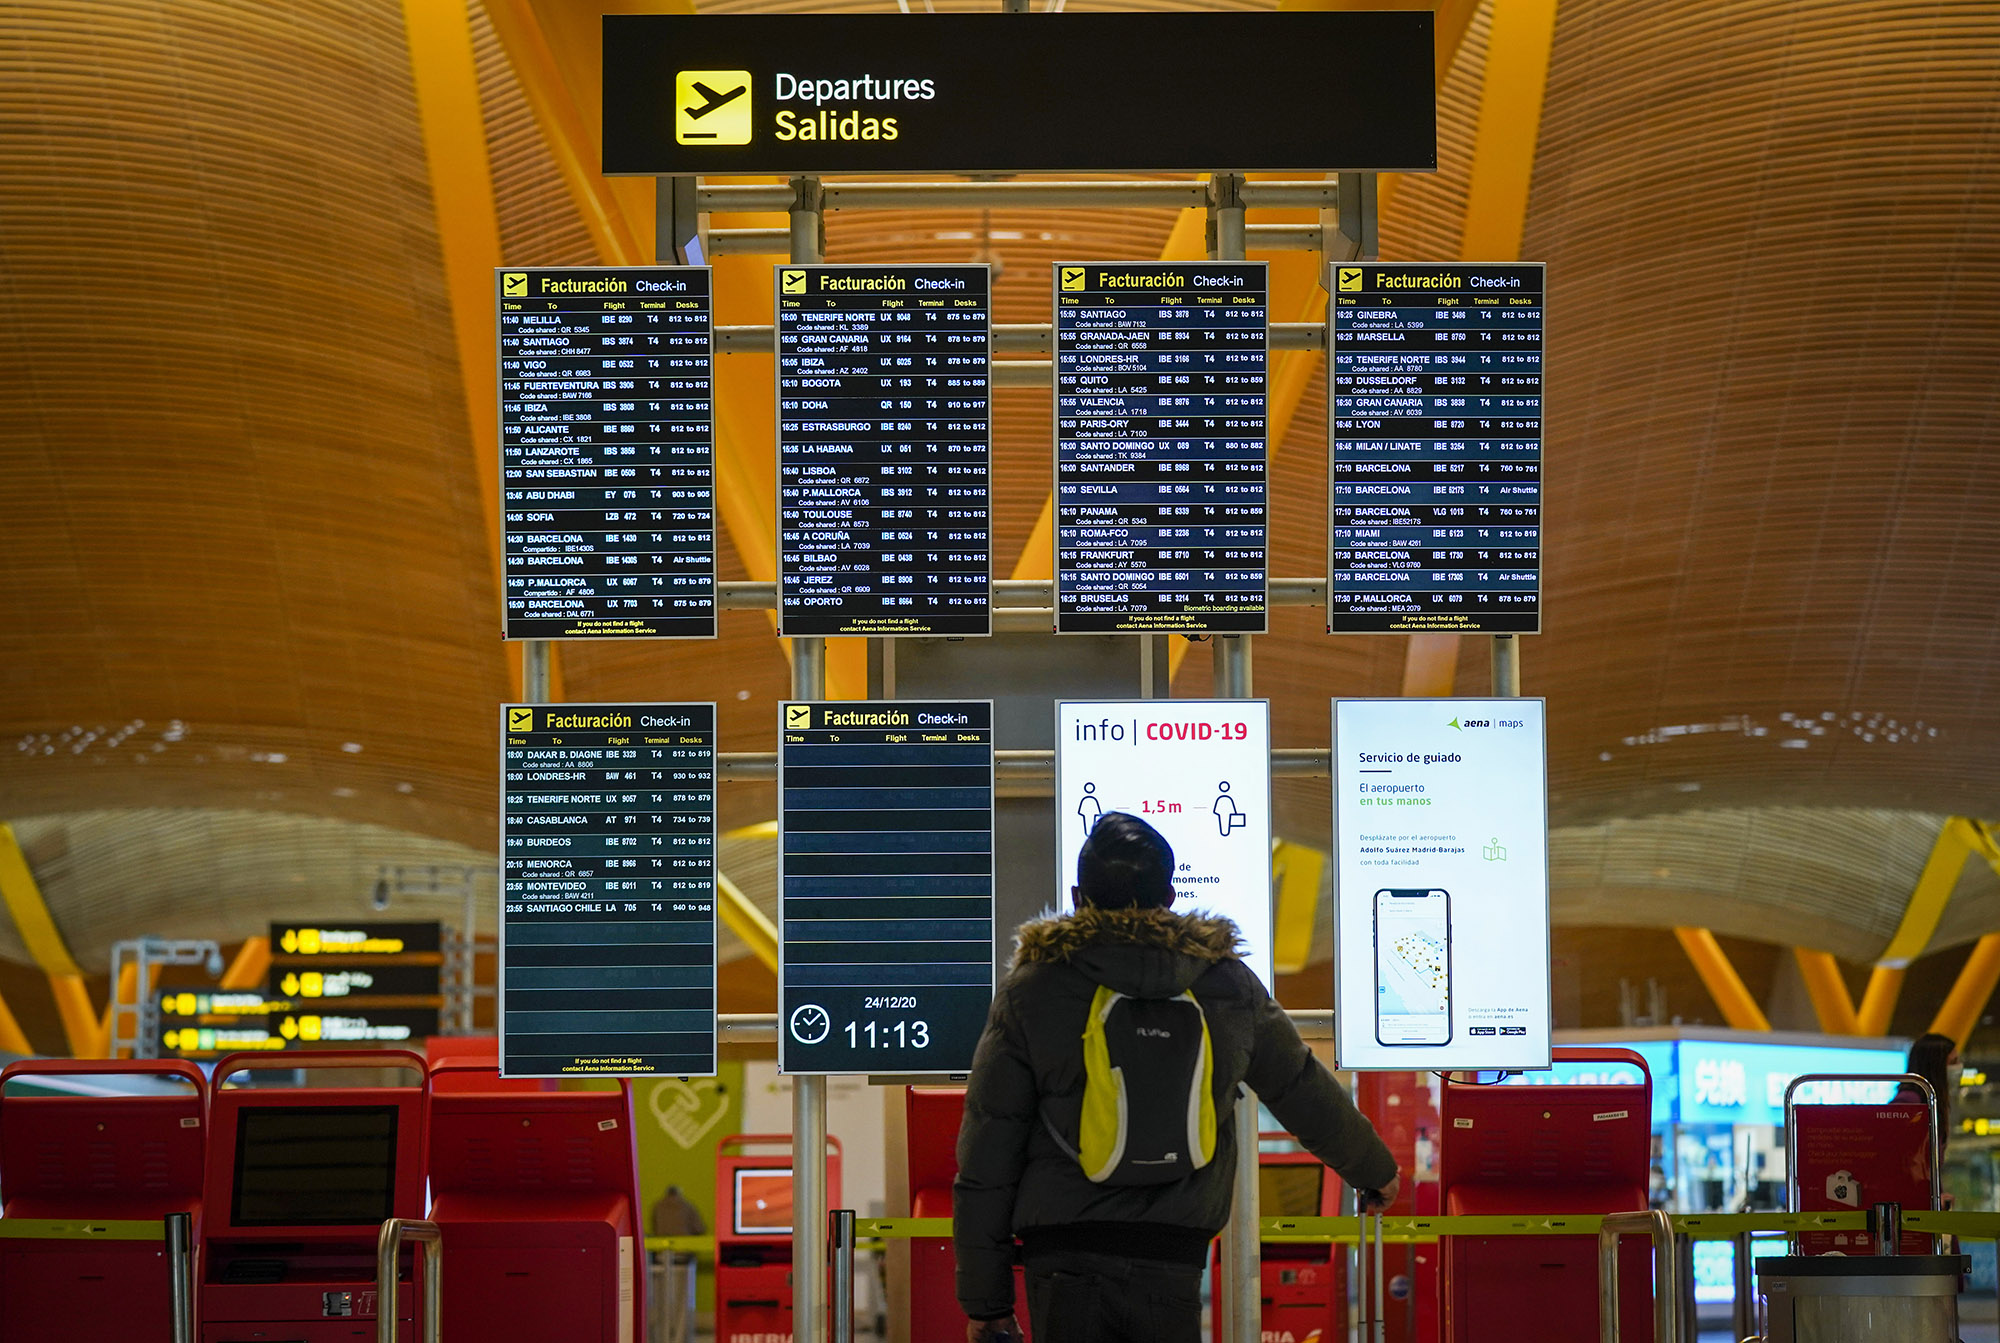 A passenger checks flight information on a board in the departures hall at Madrid Barajas airport, in Madrid, Spain, on Thursday, December 24.